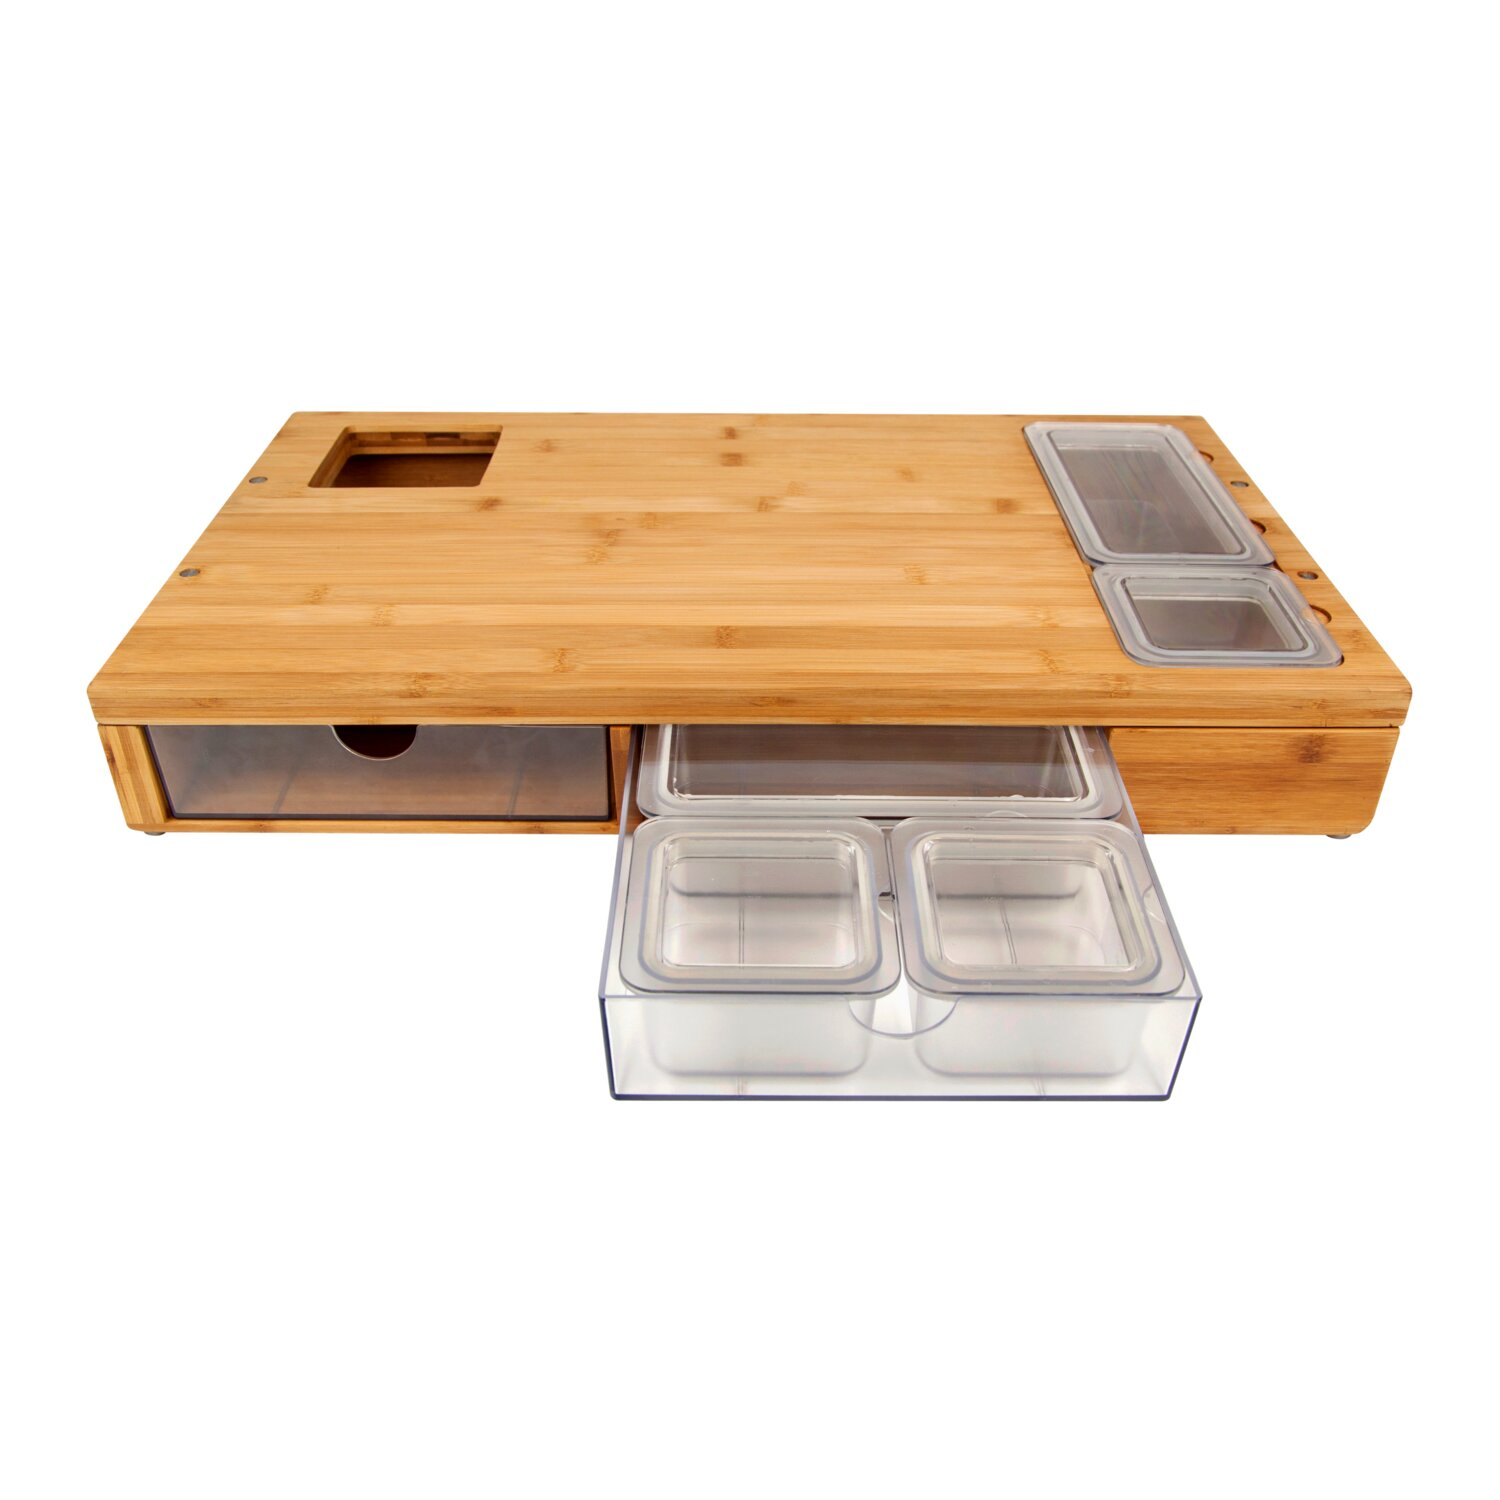 The curtis stone workbench